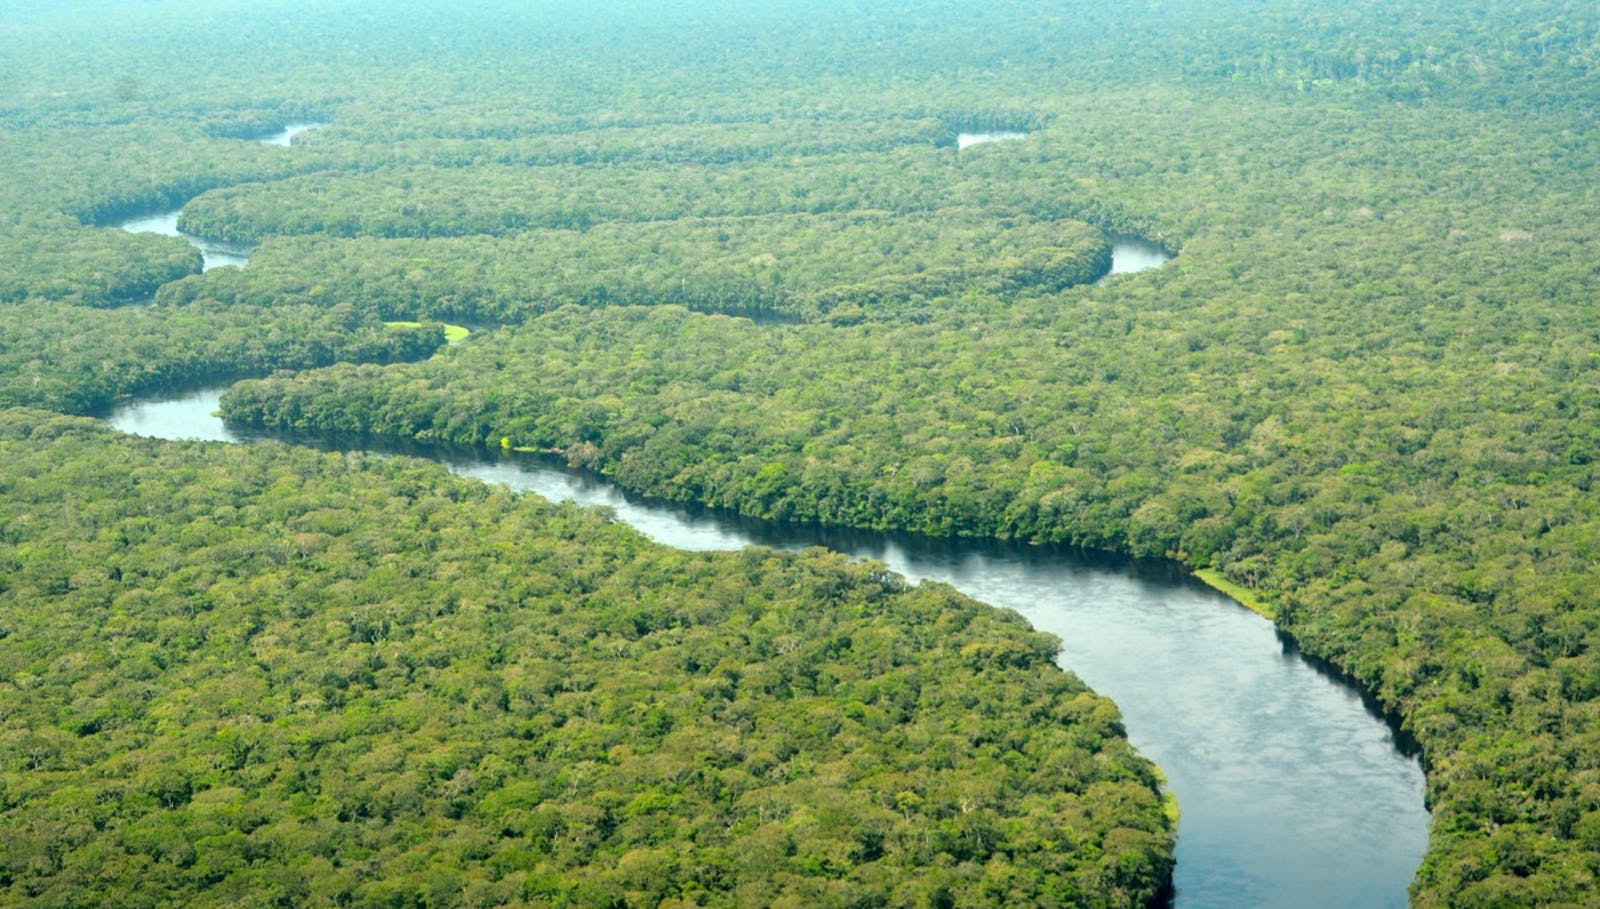 Central Congolian Lowland Forests